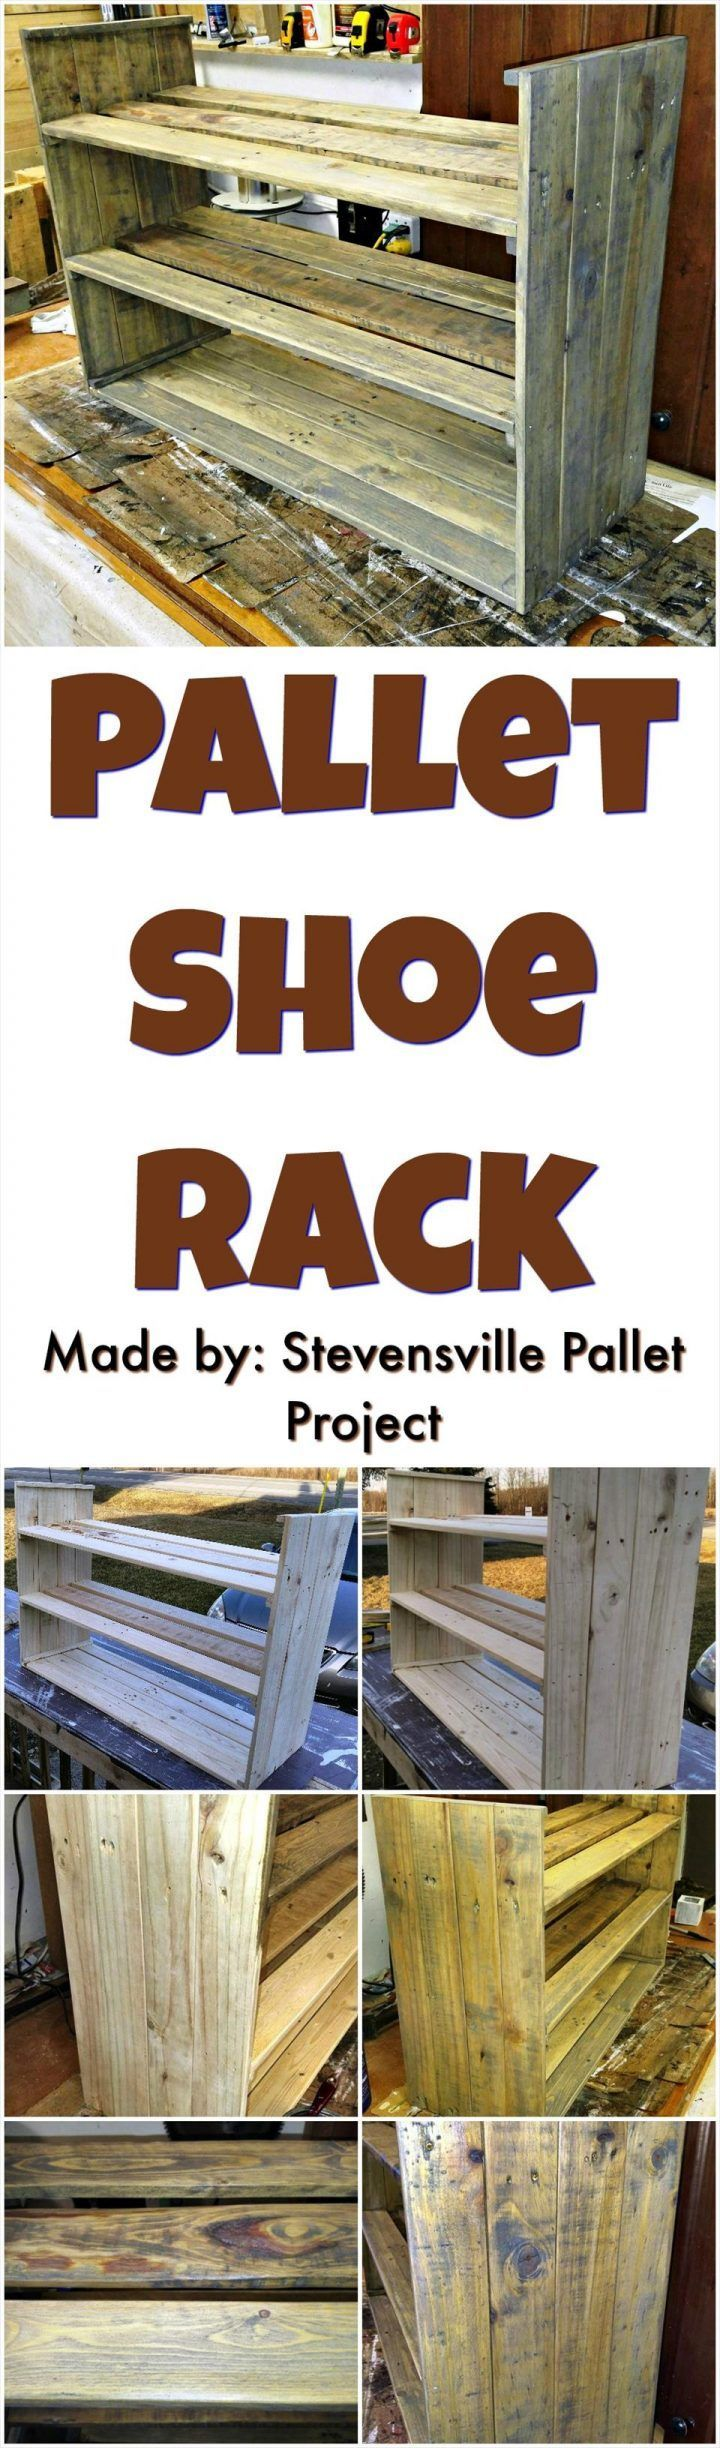 wood pallet shoe rack diy artpallet ideasshoe